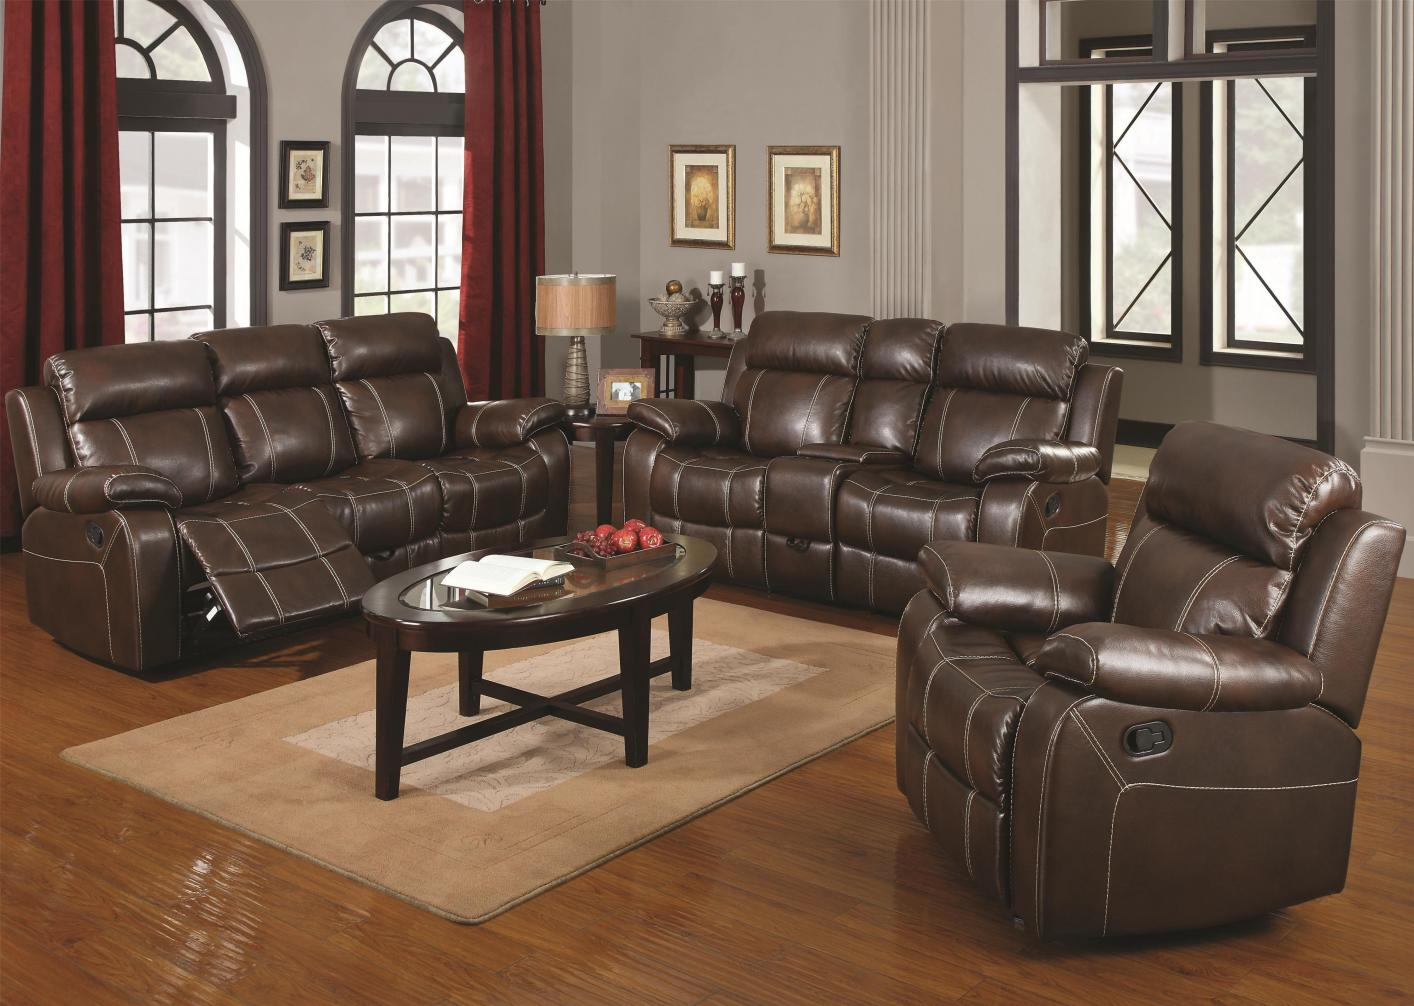 Brown Leather Reclining Loveseat Brown Leather Reclining Loveseat ... & Brown Leather Reclining Loveseat - Steal-A-Sofa Furniture Outlet ... islam-shia.org